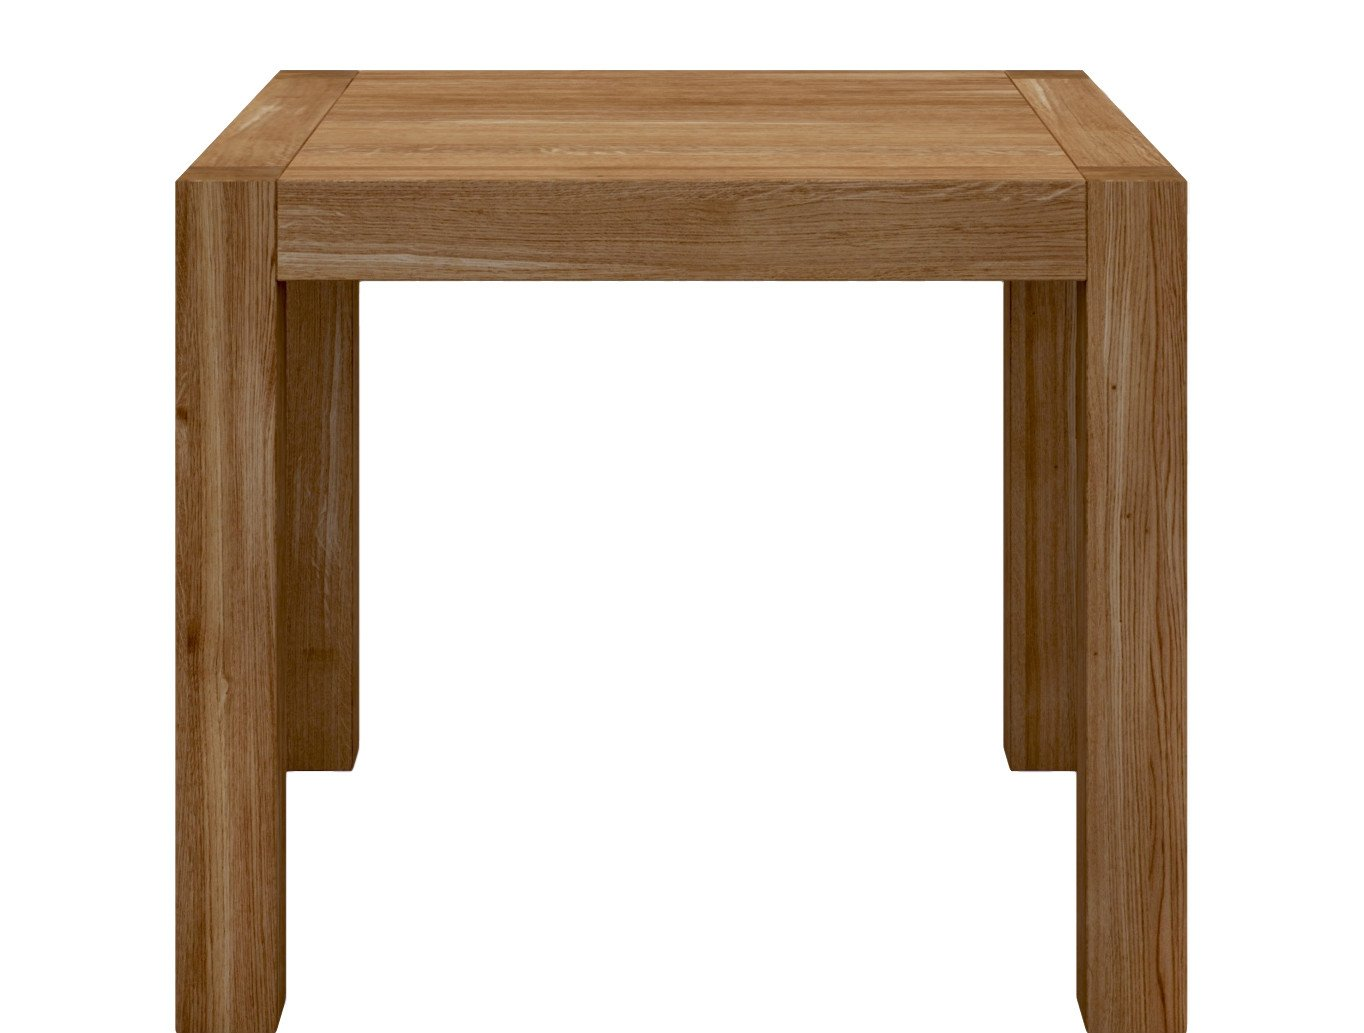 Blox Table Tobacco 90x90, Miloni